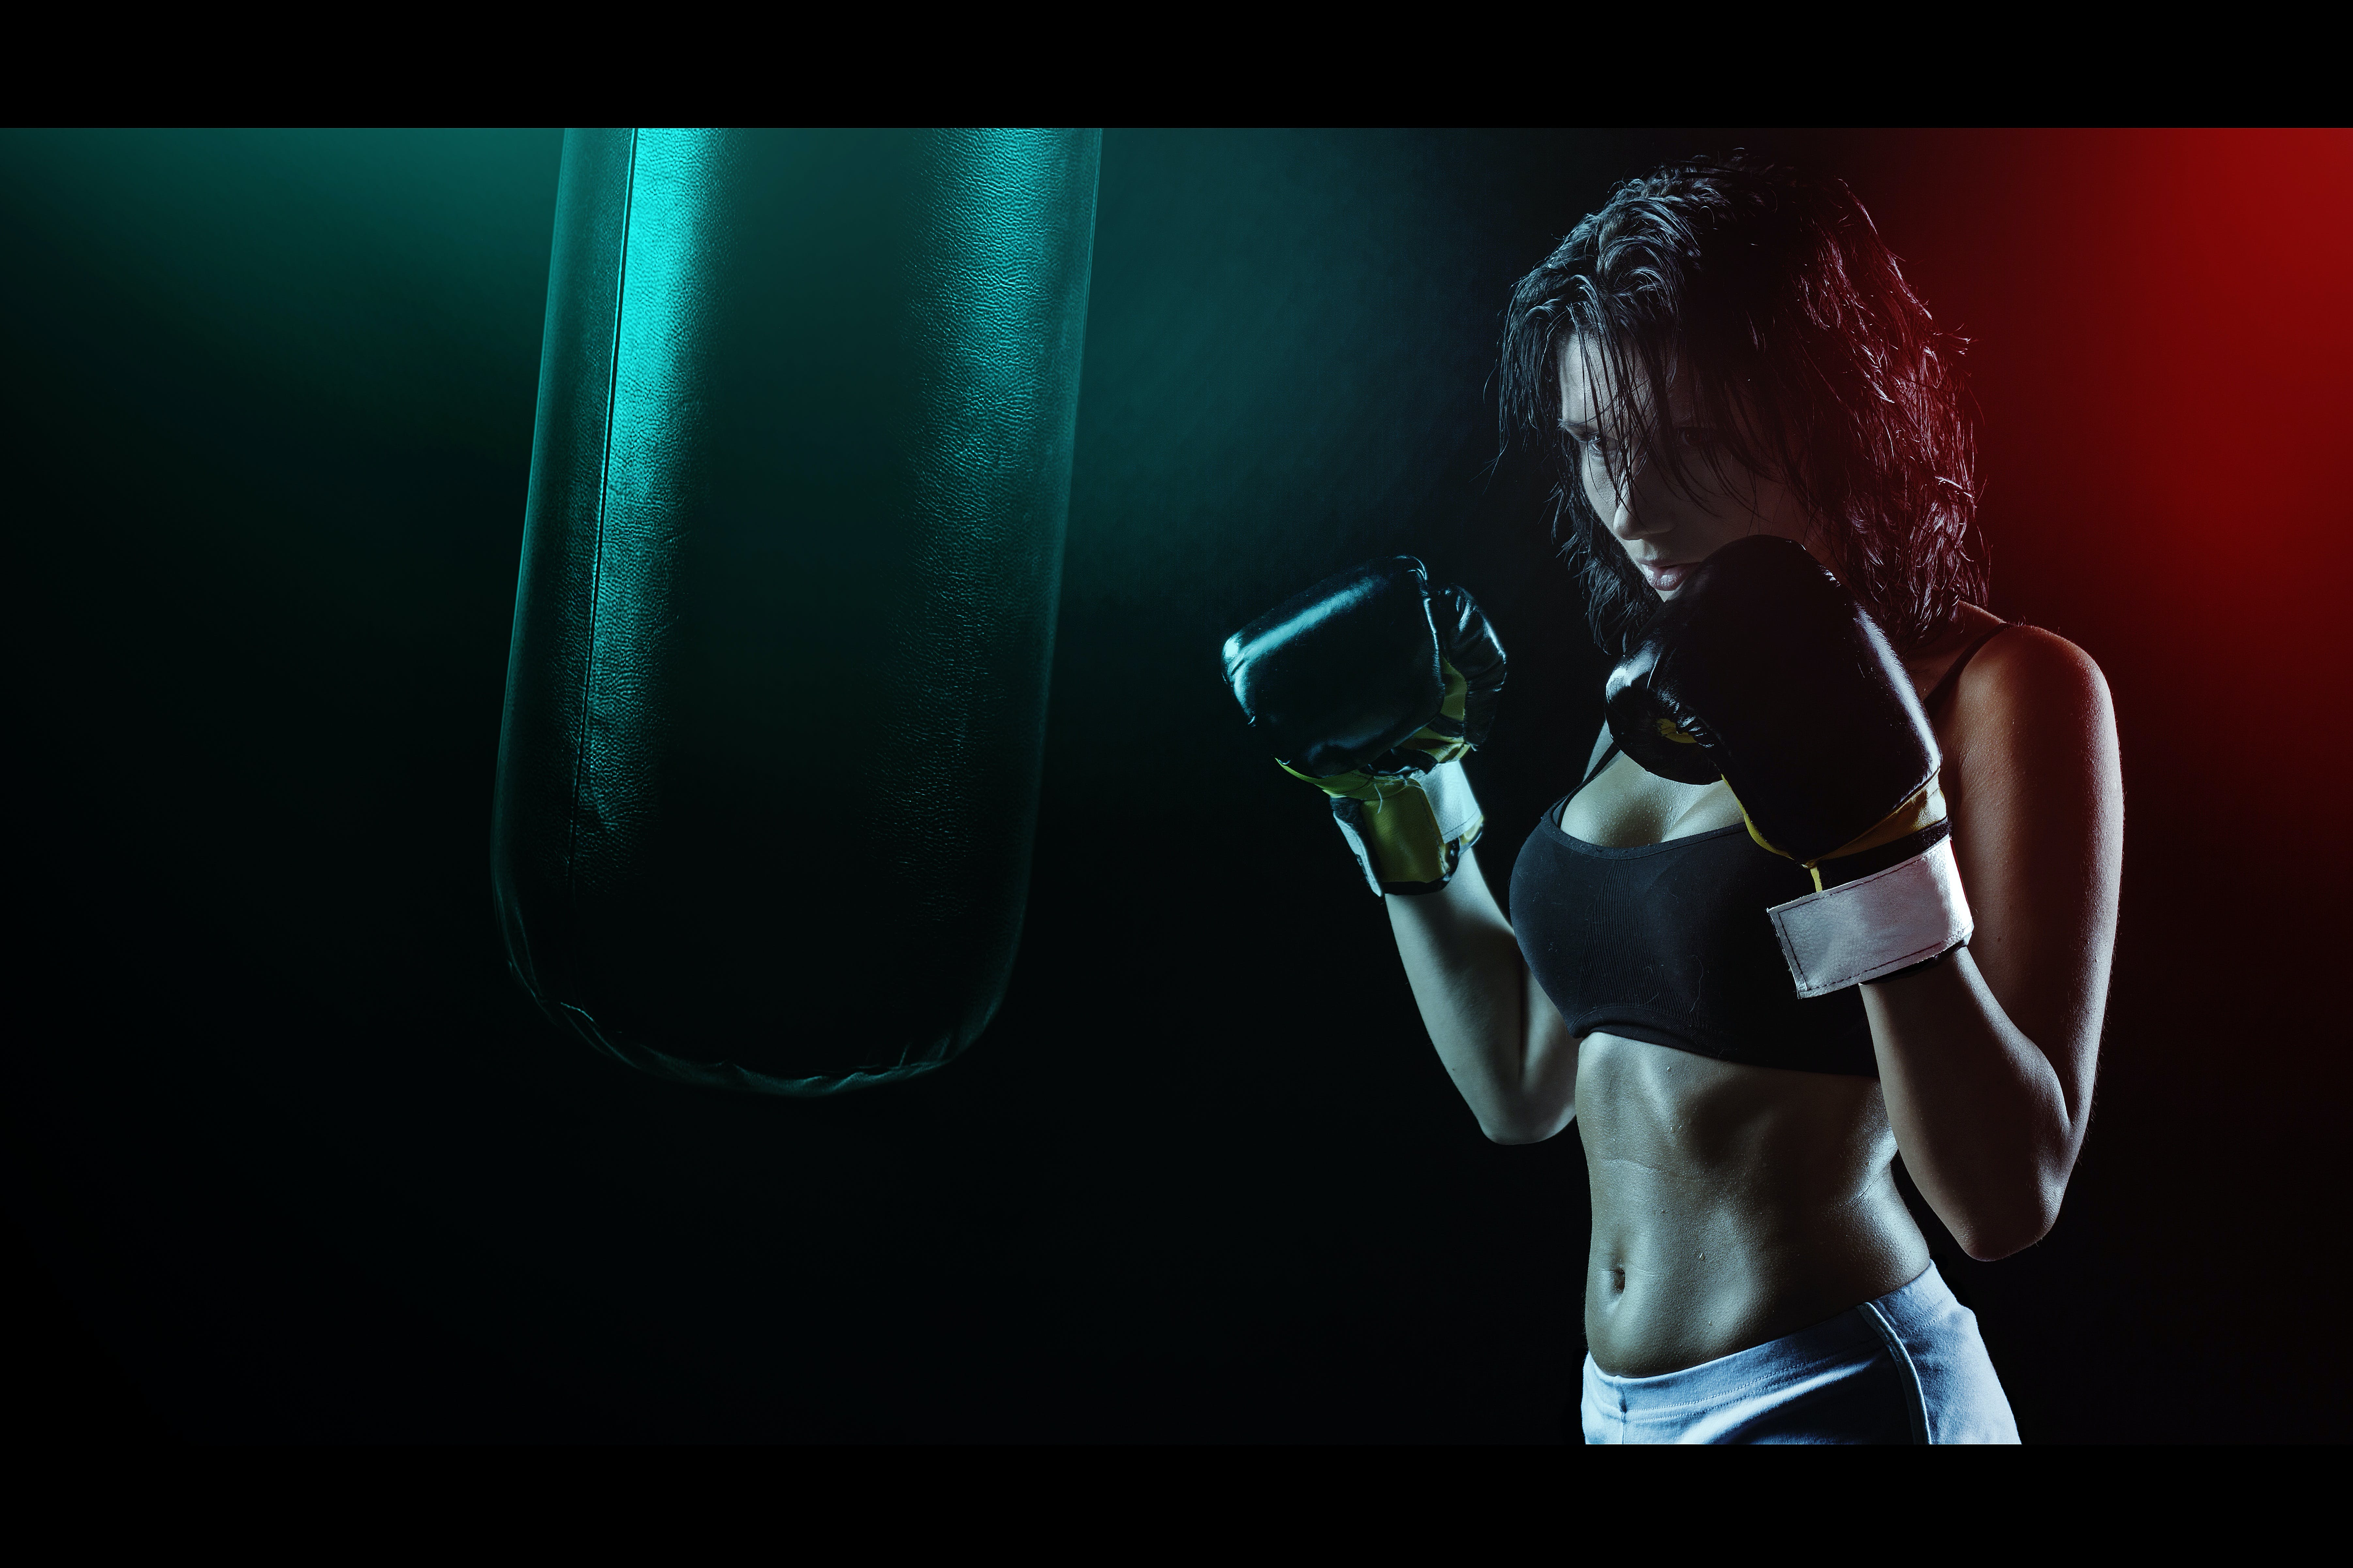 Woman in Boxing Gloves With Sports Bra Posing Boxing Style in Front of Punching Bag